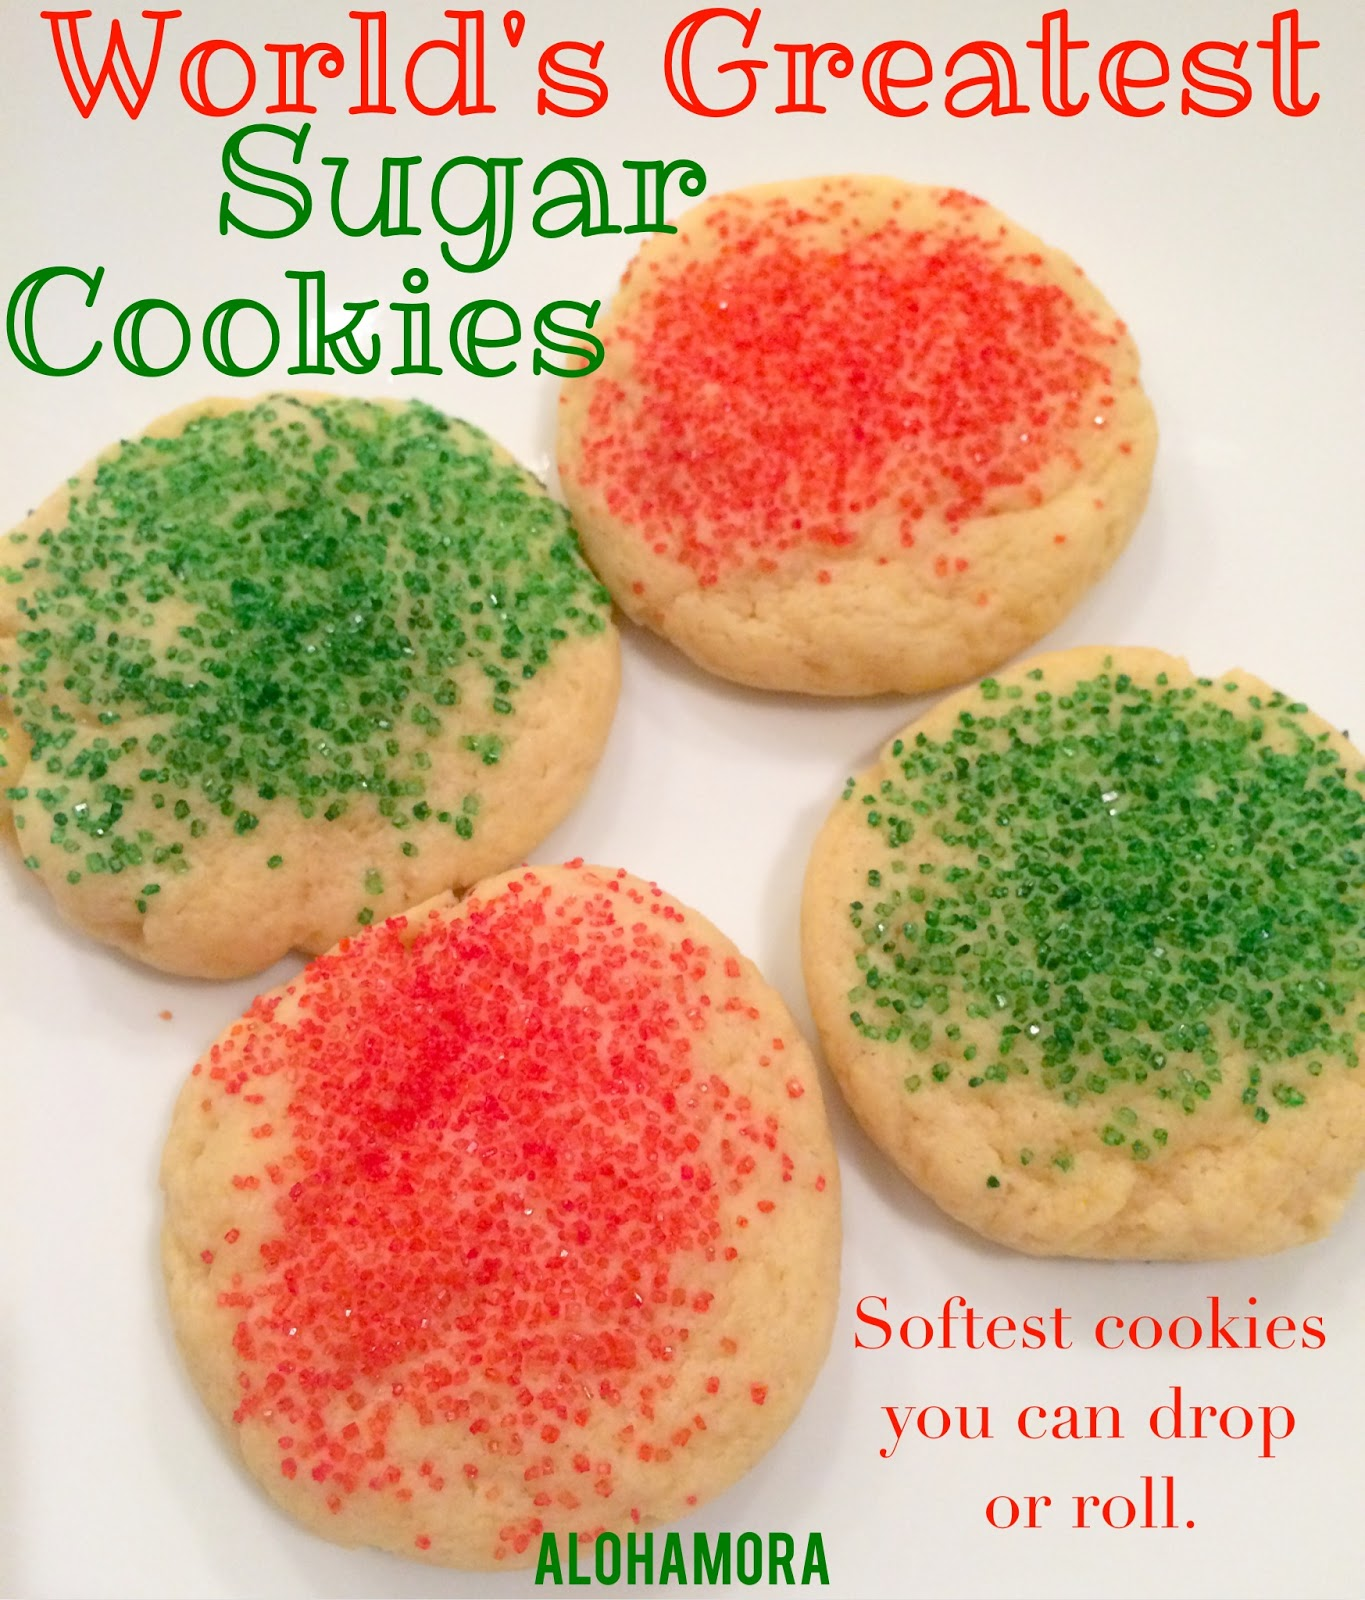 World's Greatest Sugar Cookie, and they really are the Best Cookies!  These sugar cookies are soft, and stay soft for days.  These sugar cookies can be rolled out or you can drop them to make them fast.  There are so very many options with these cookies.   Alohamora Open a Book http://alohamoraopenabook.blogspot.com/